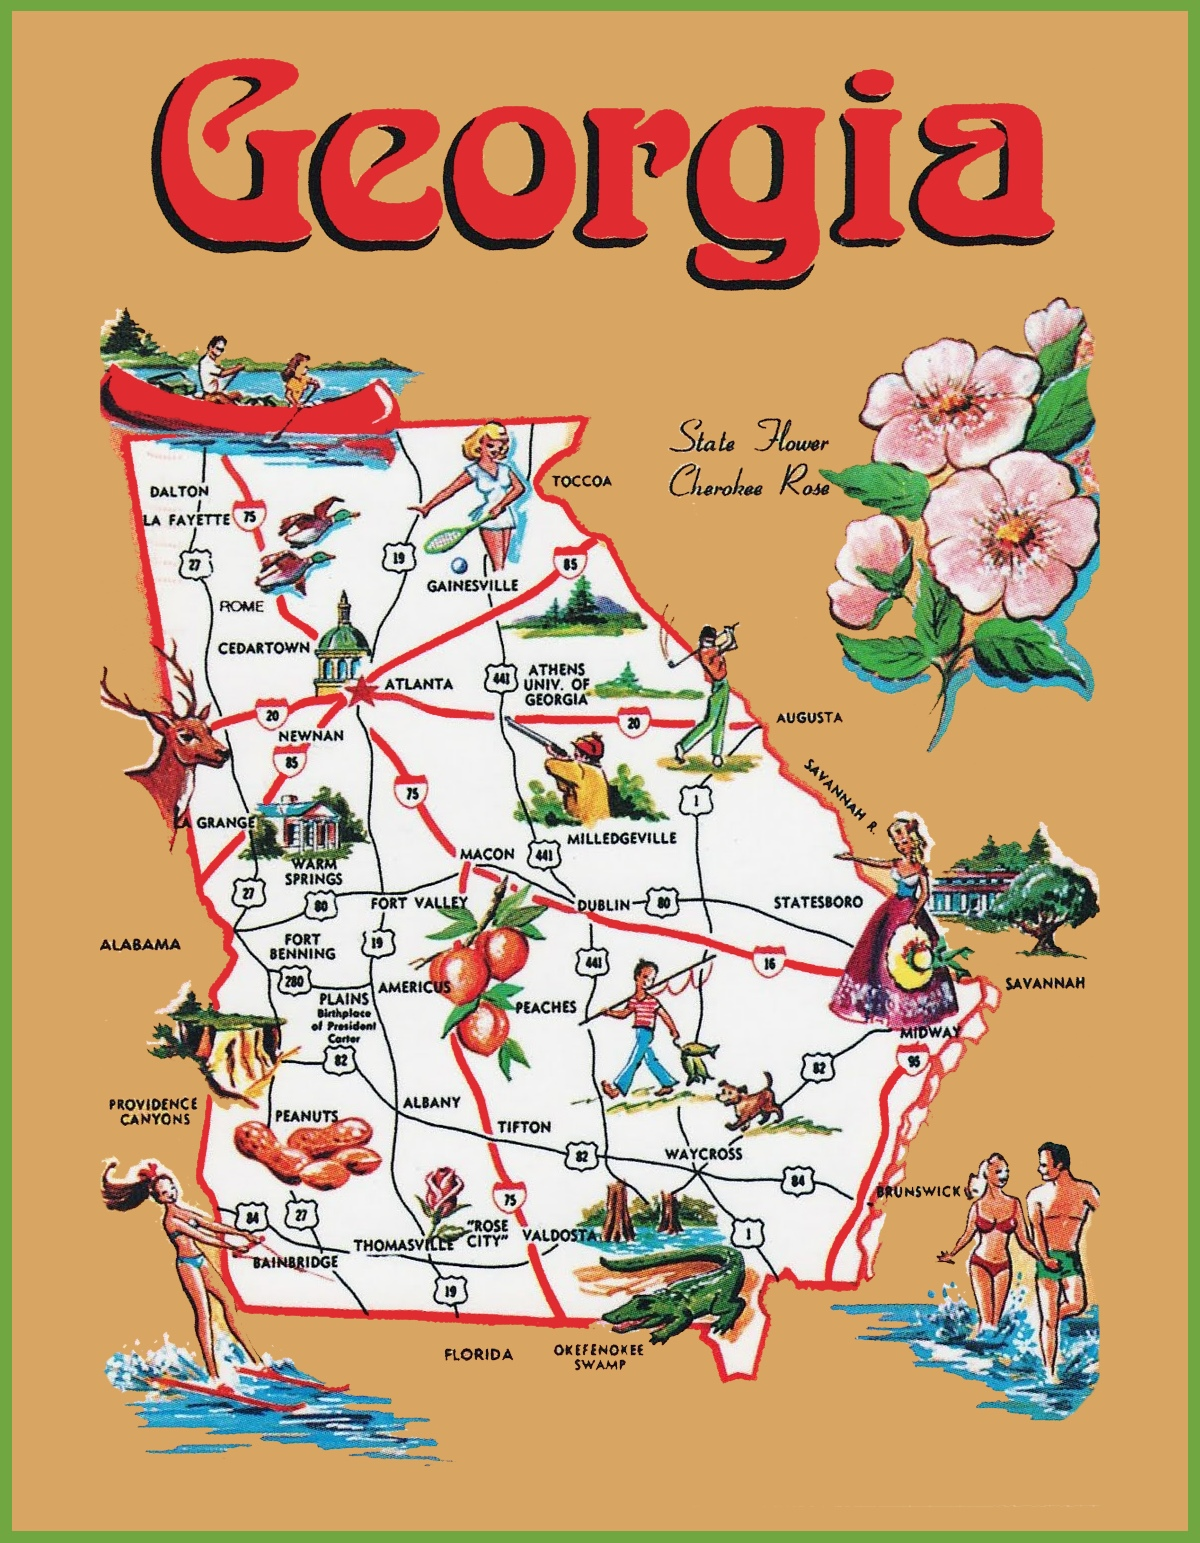 Georgia State Maps USA Maps Of Georgia GA - Map og georgia